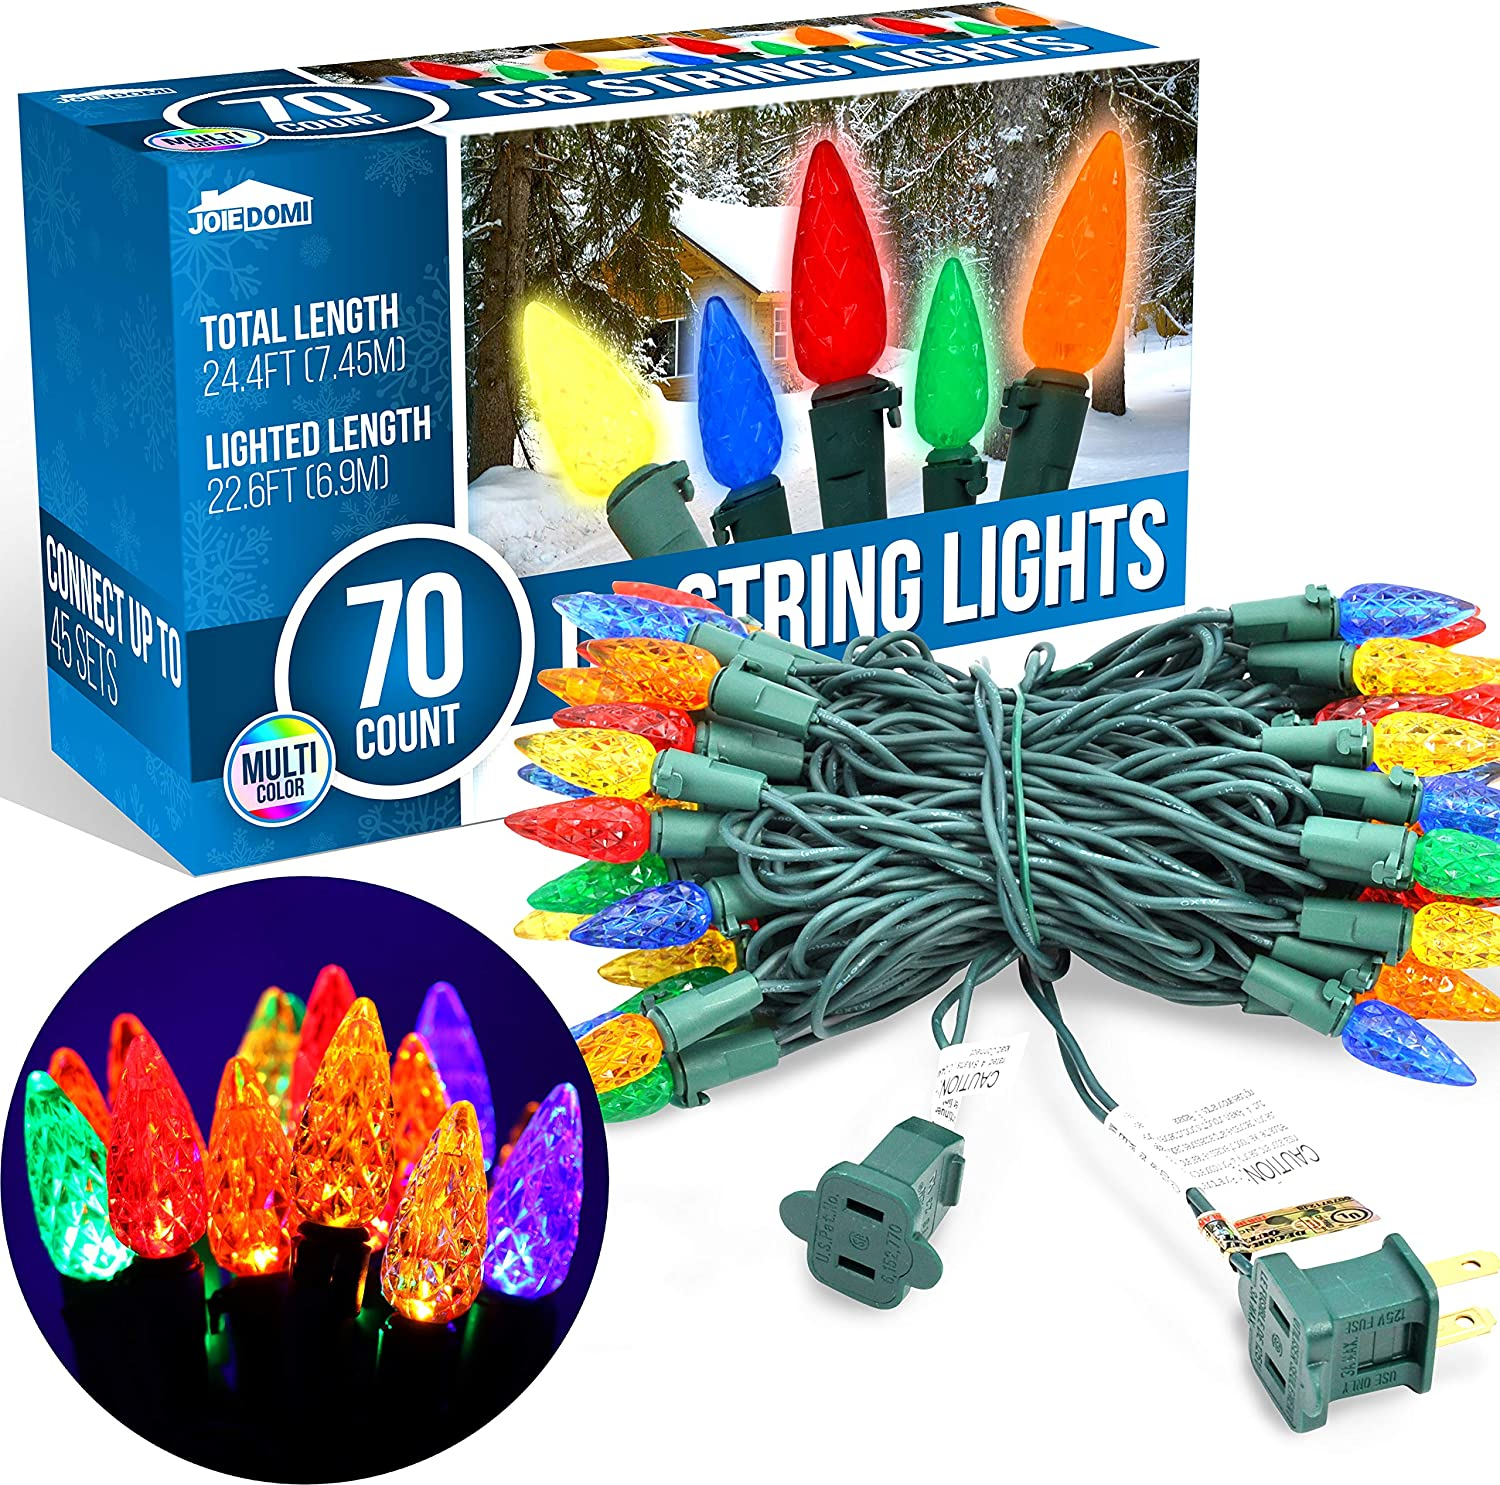 Joiedomi 70-Counts C6 Christmas Light, Multicolor Christmas Lights for Indoor or Outdoor Christmas Decorations